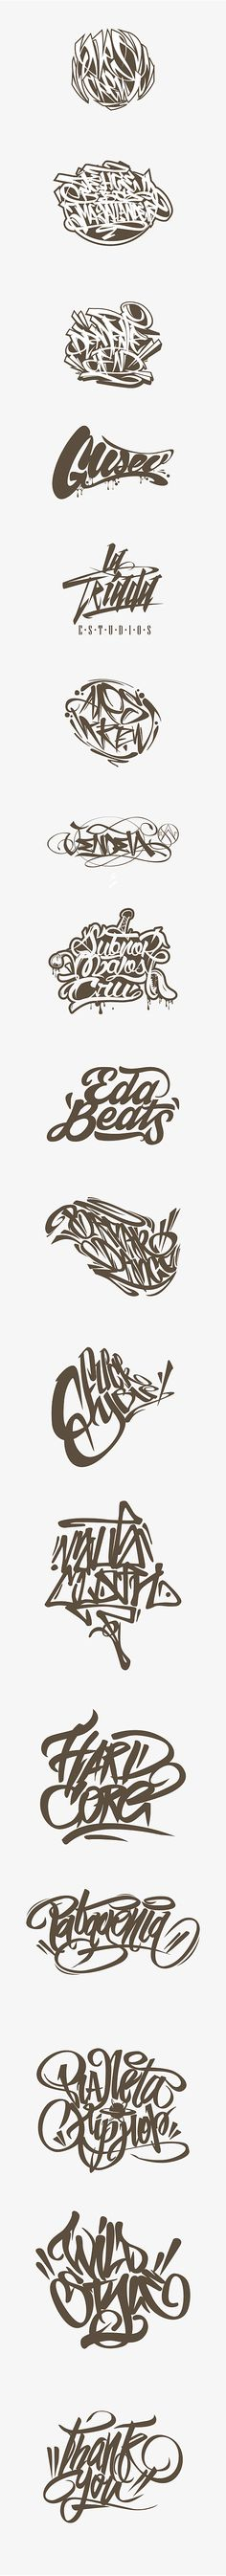 Calligraffiti - Lettering on Behance